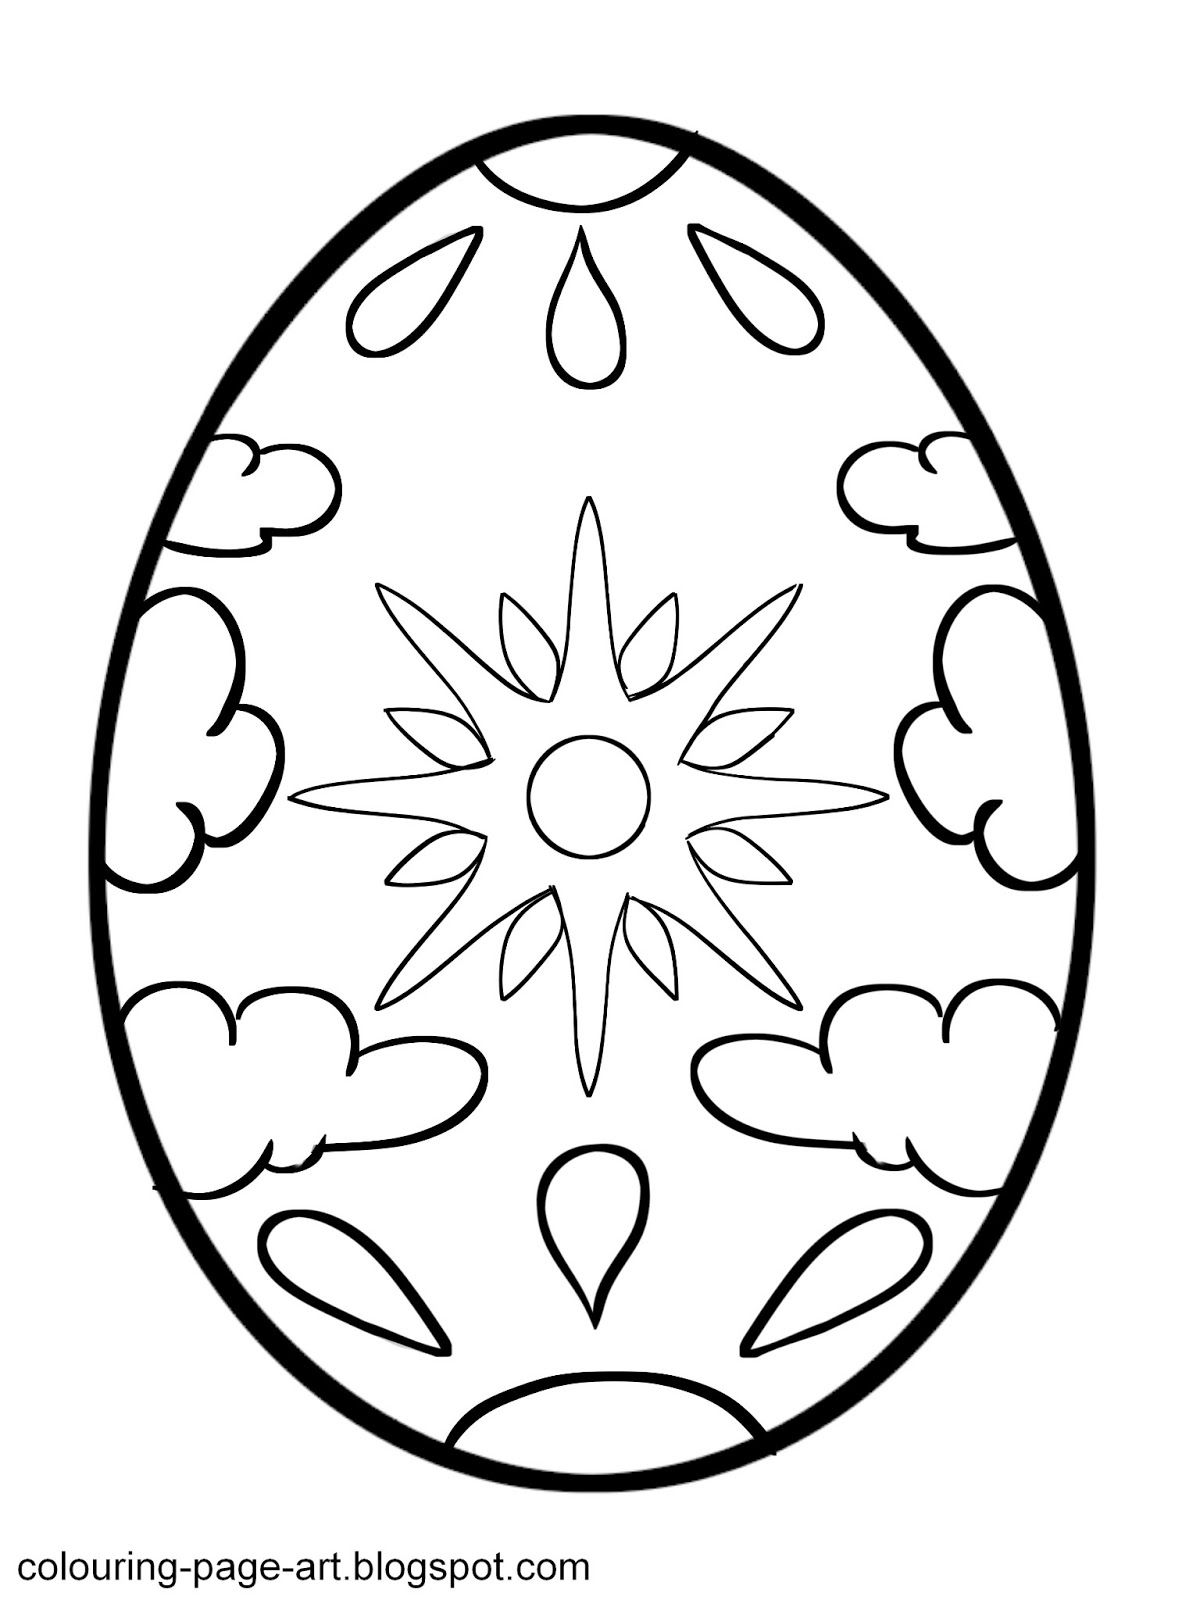 Free Printable Easter Egg Templates and Coloring Sheets - Simple ... | 1600x1200